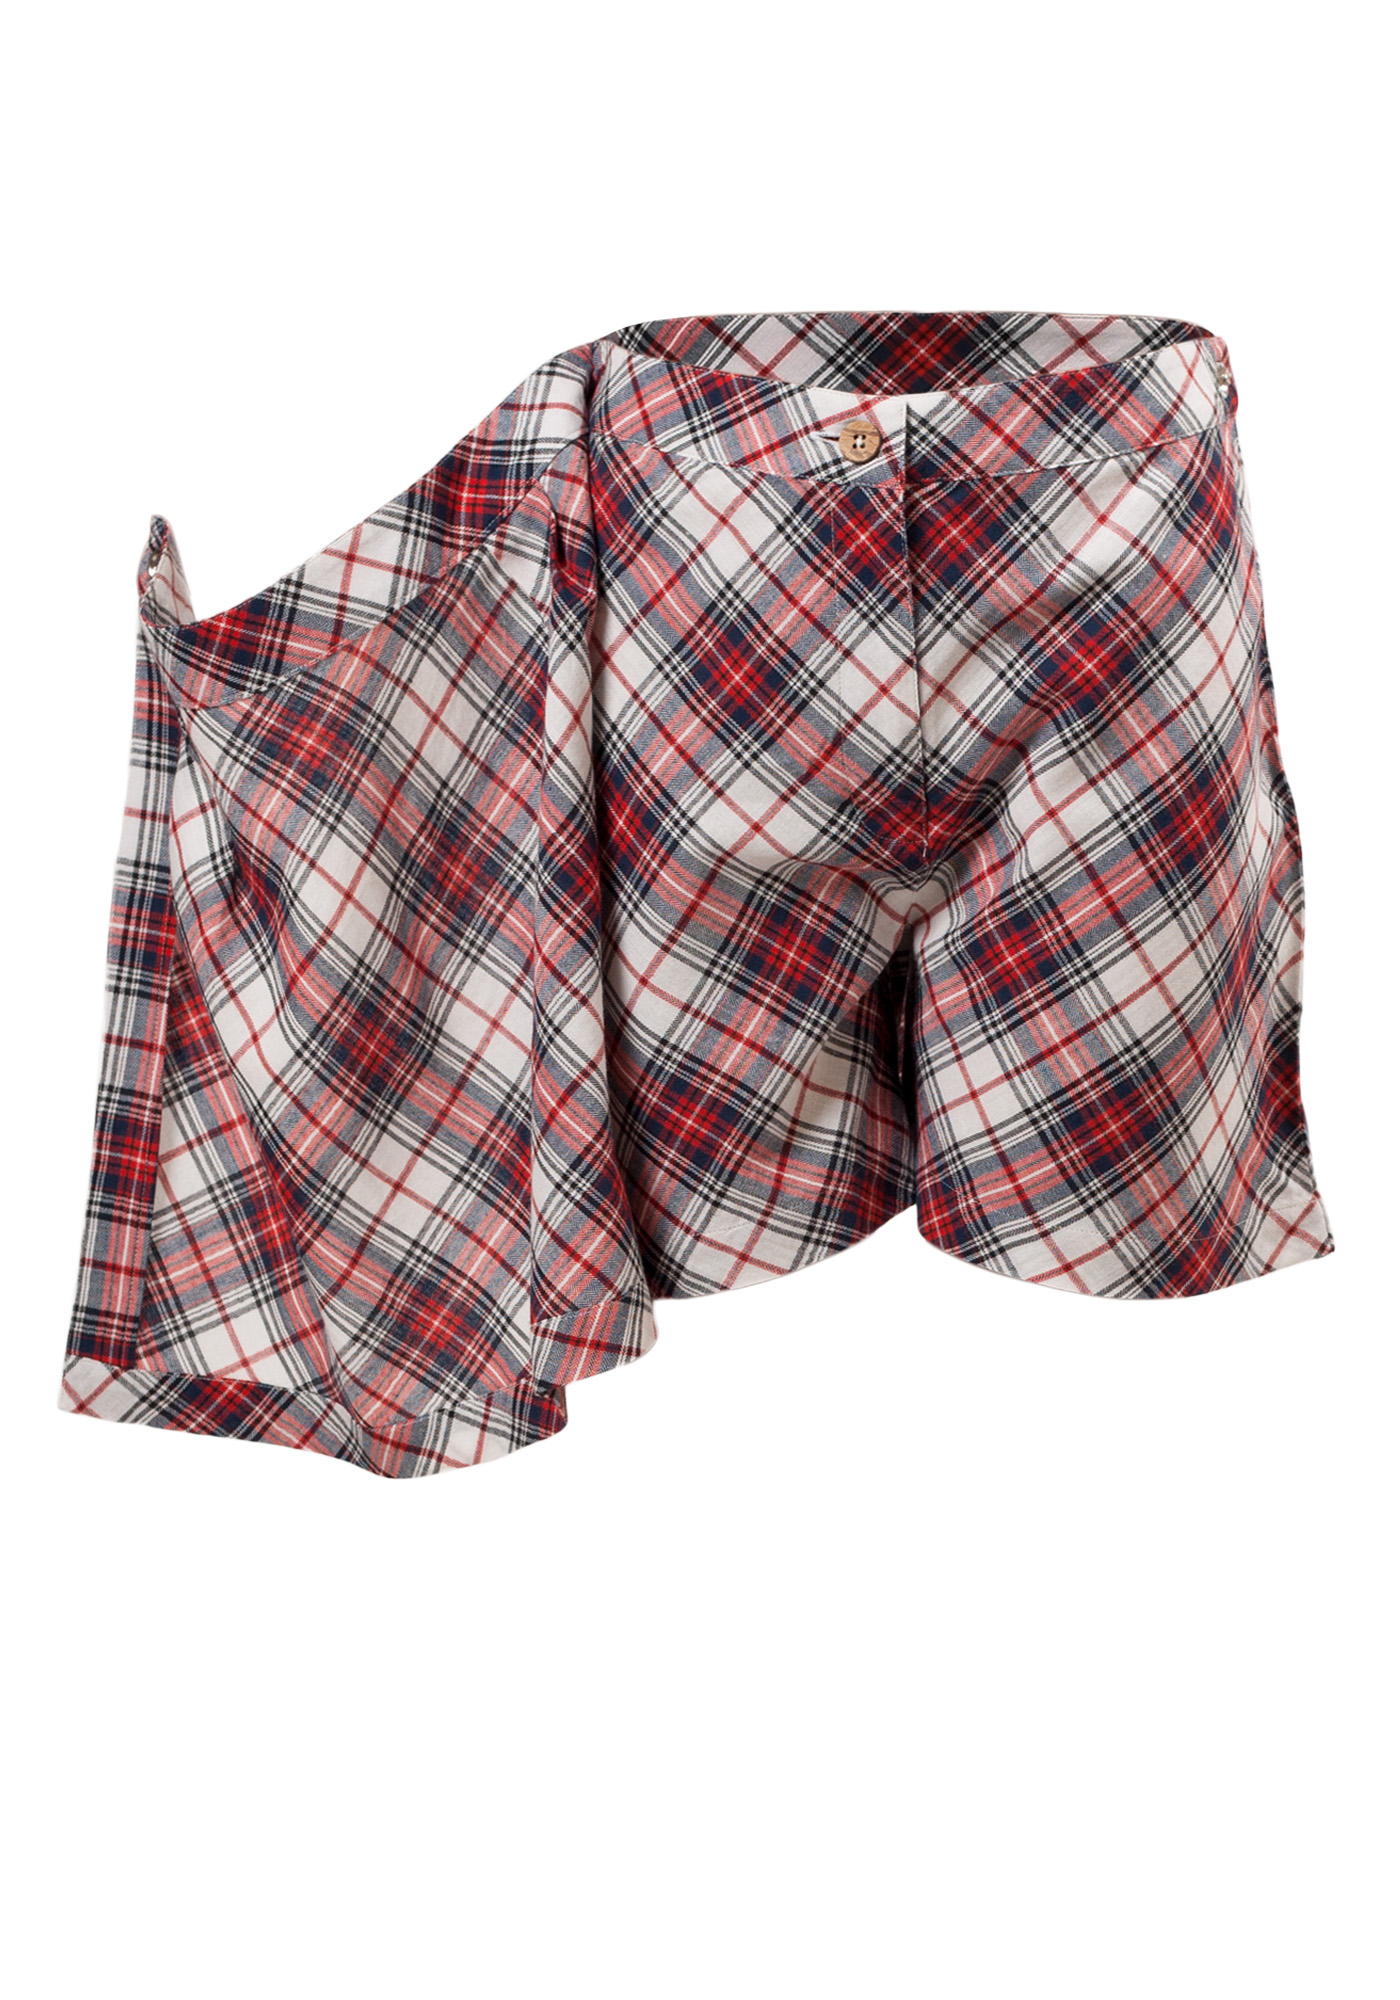 MINC Petite Tartan Girls Short Skorts in Red, White and Blue Cotton Checks